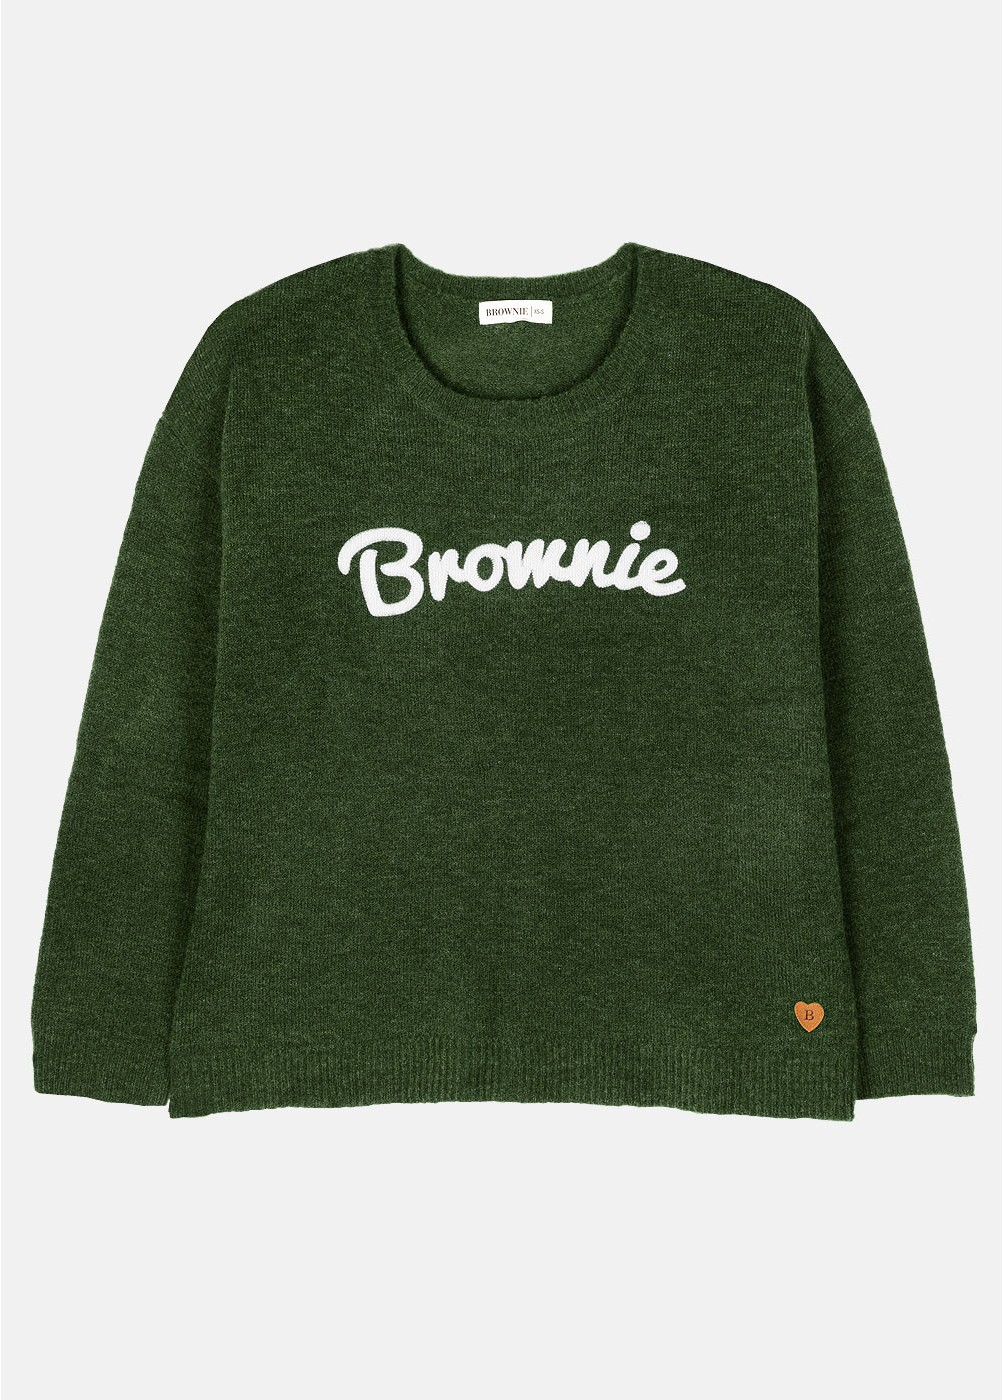 JERSEY BORDADO BROWNIE